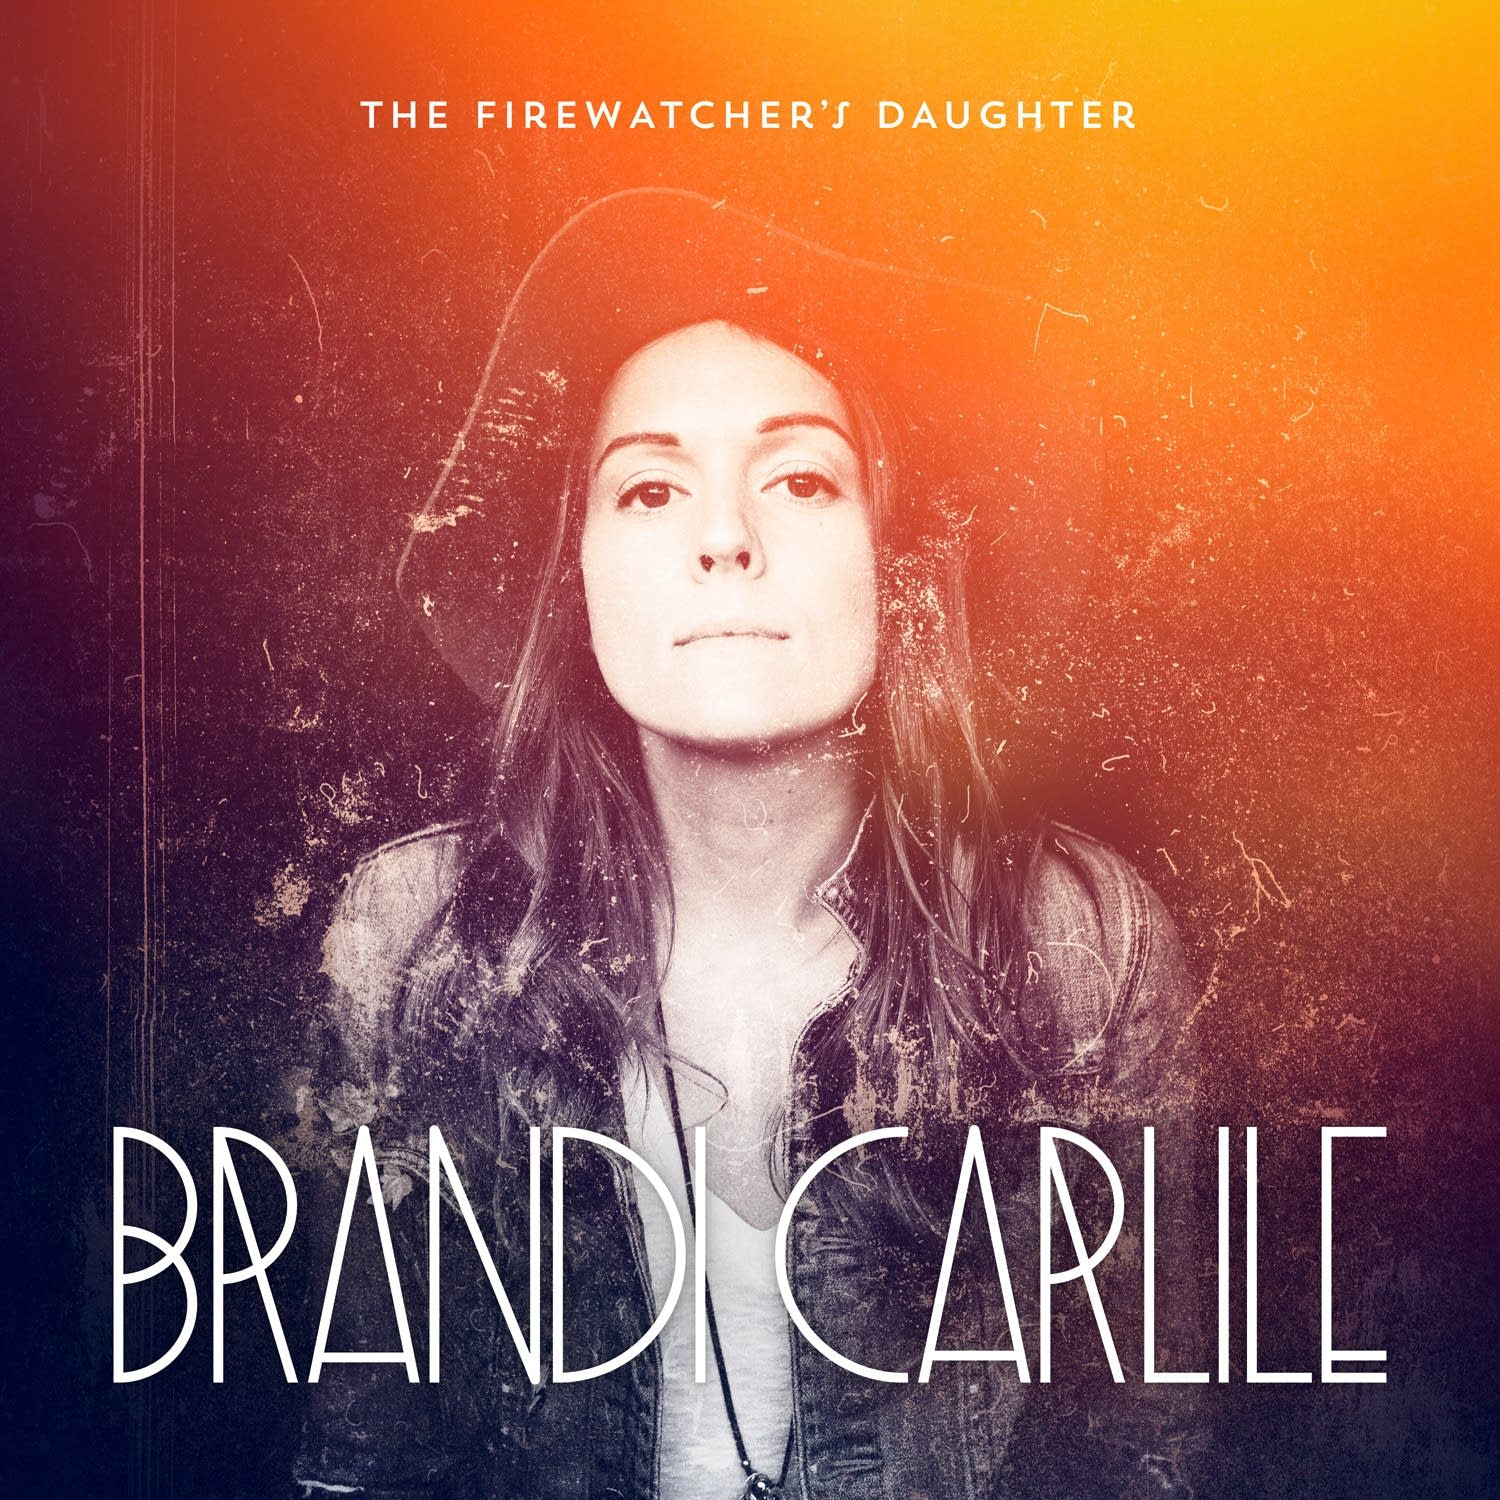 Brandi Carlile, 'The Firewatcher's Daughter'